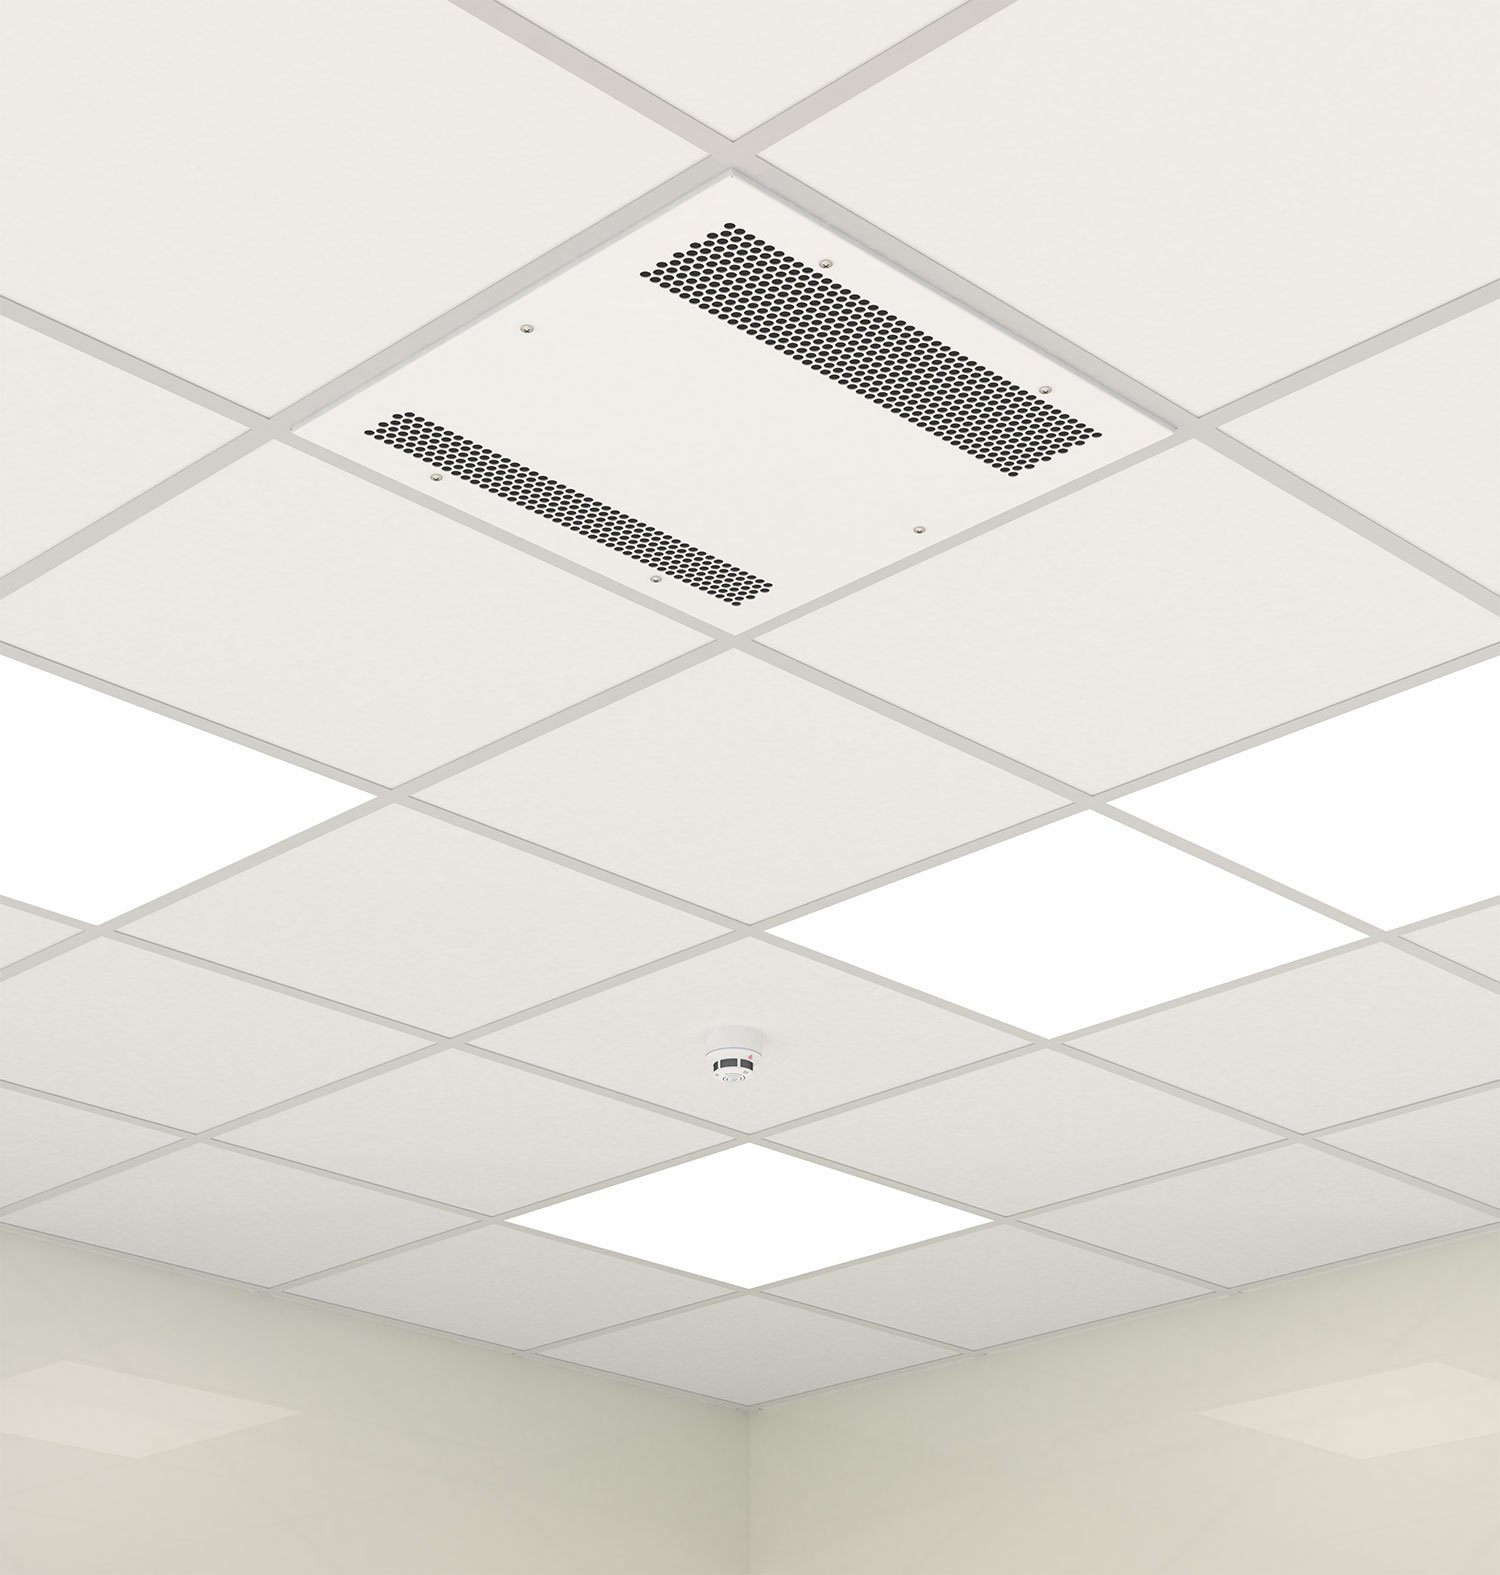 Instalation of cassette K7 in false ceiling